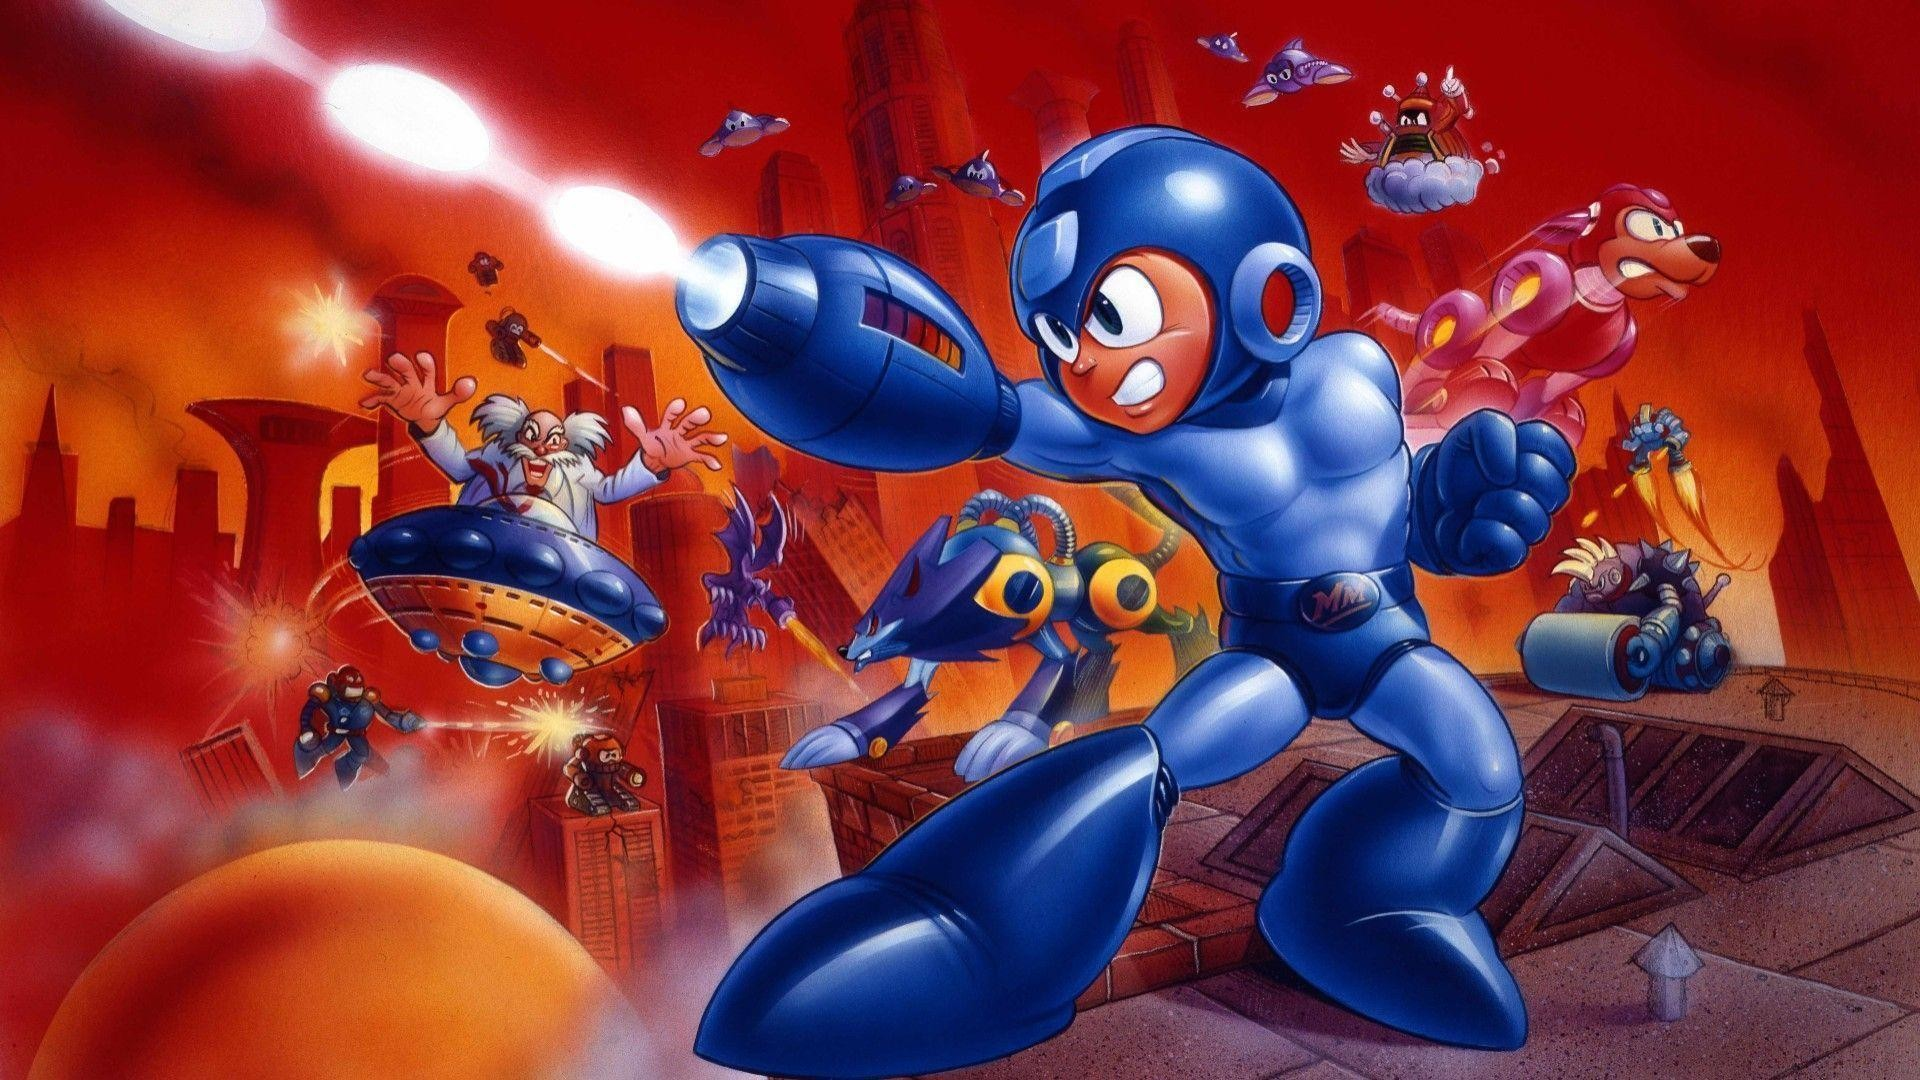 Res: 1920x1080, megaman x wallpaper 10 - | Images And Wallpapers - all free to .